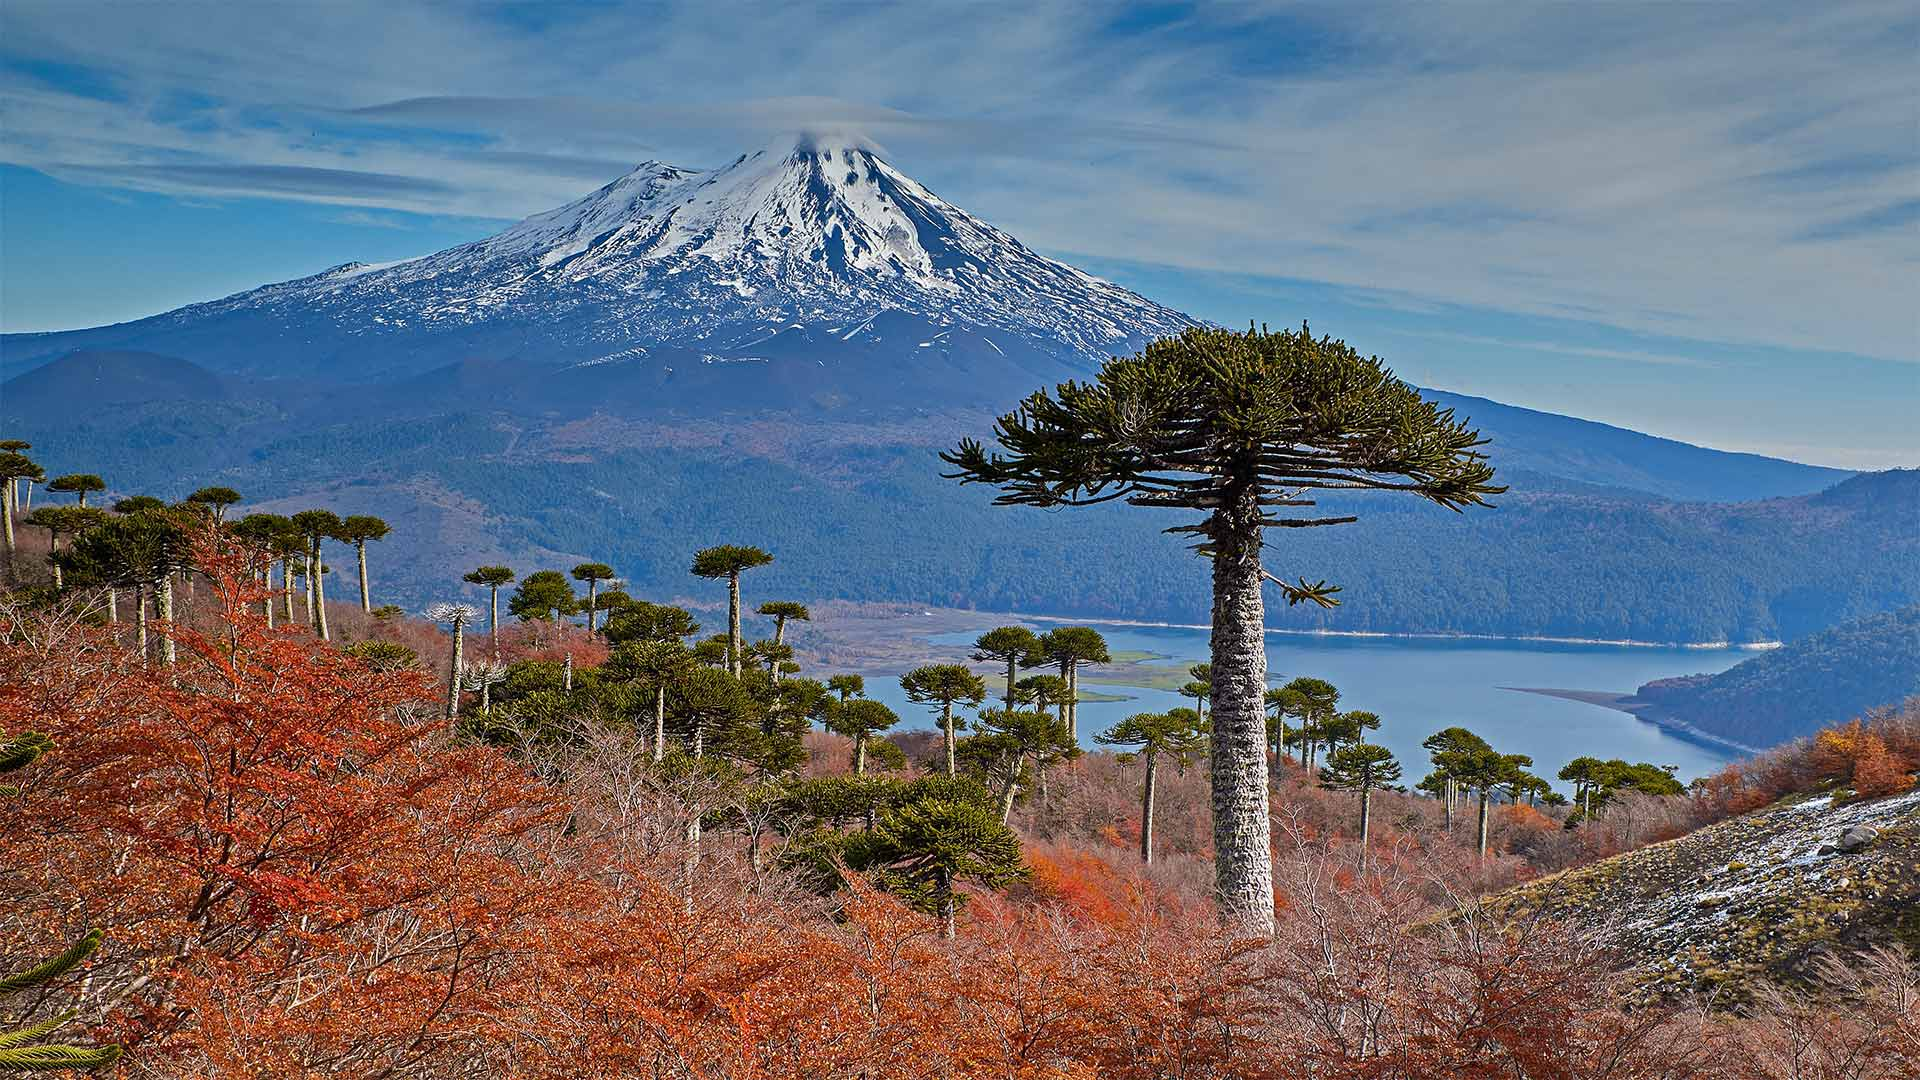 Volcano Llaima with Araucaria trees in the foreground, Conguillío National Park, Chile (© Fotografías Jorge León Cabello/Getty Images)(Bing United States)